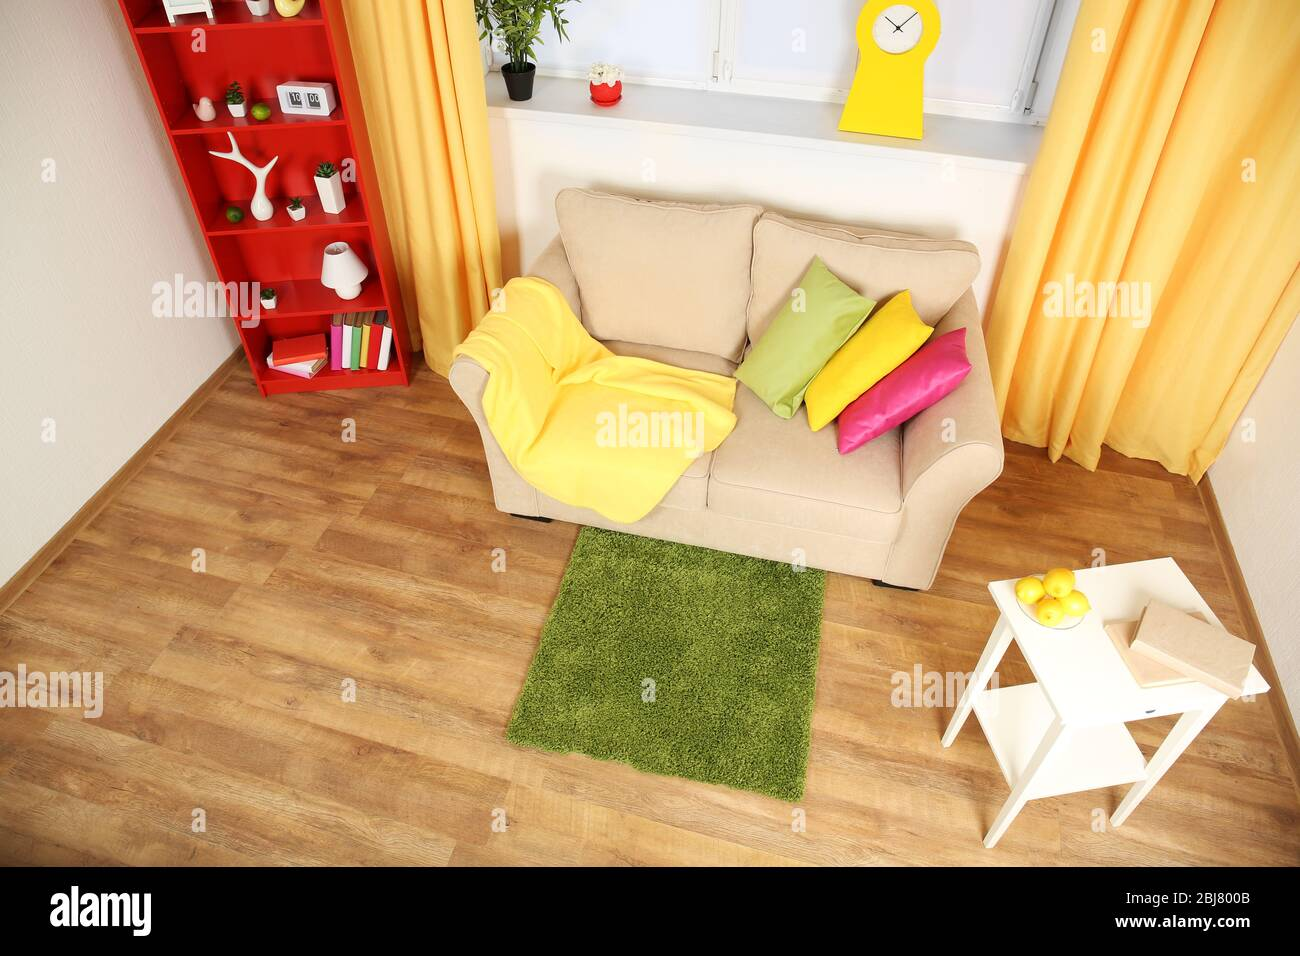 Modern Living Room Interior With Beige Sofa And Small Green Carpet Stock Photo Alamy